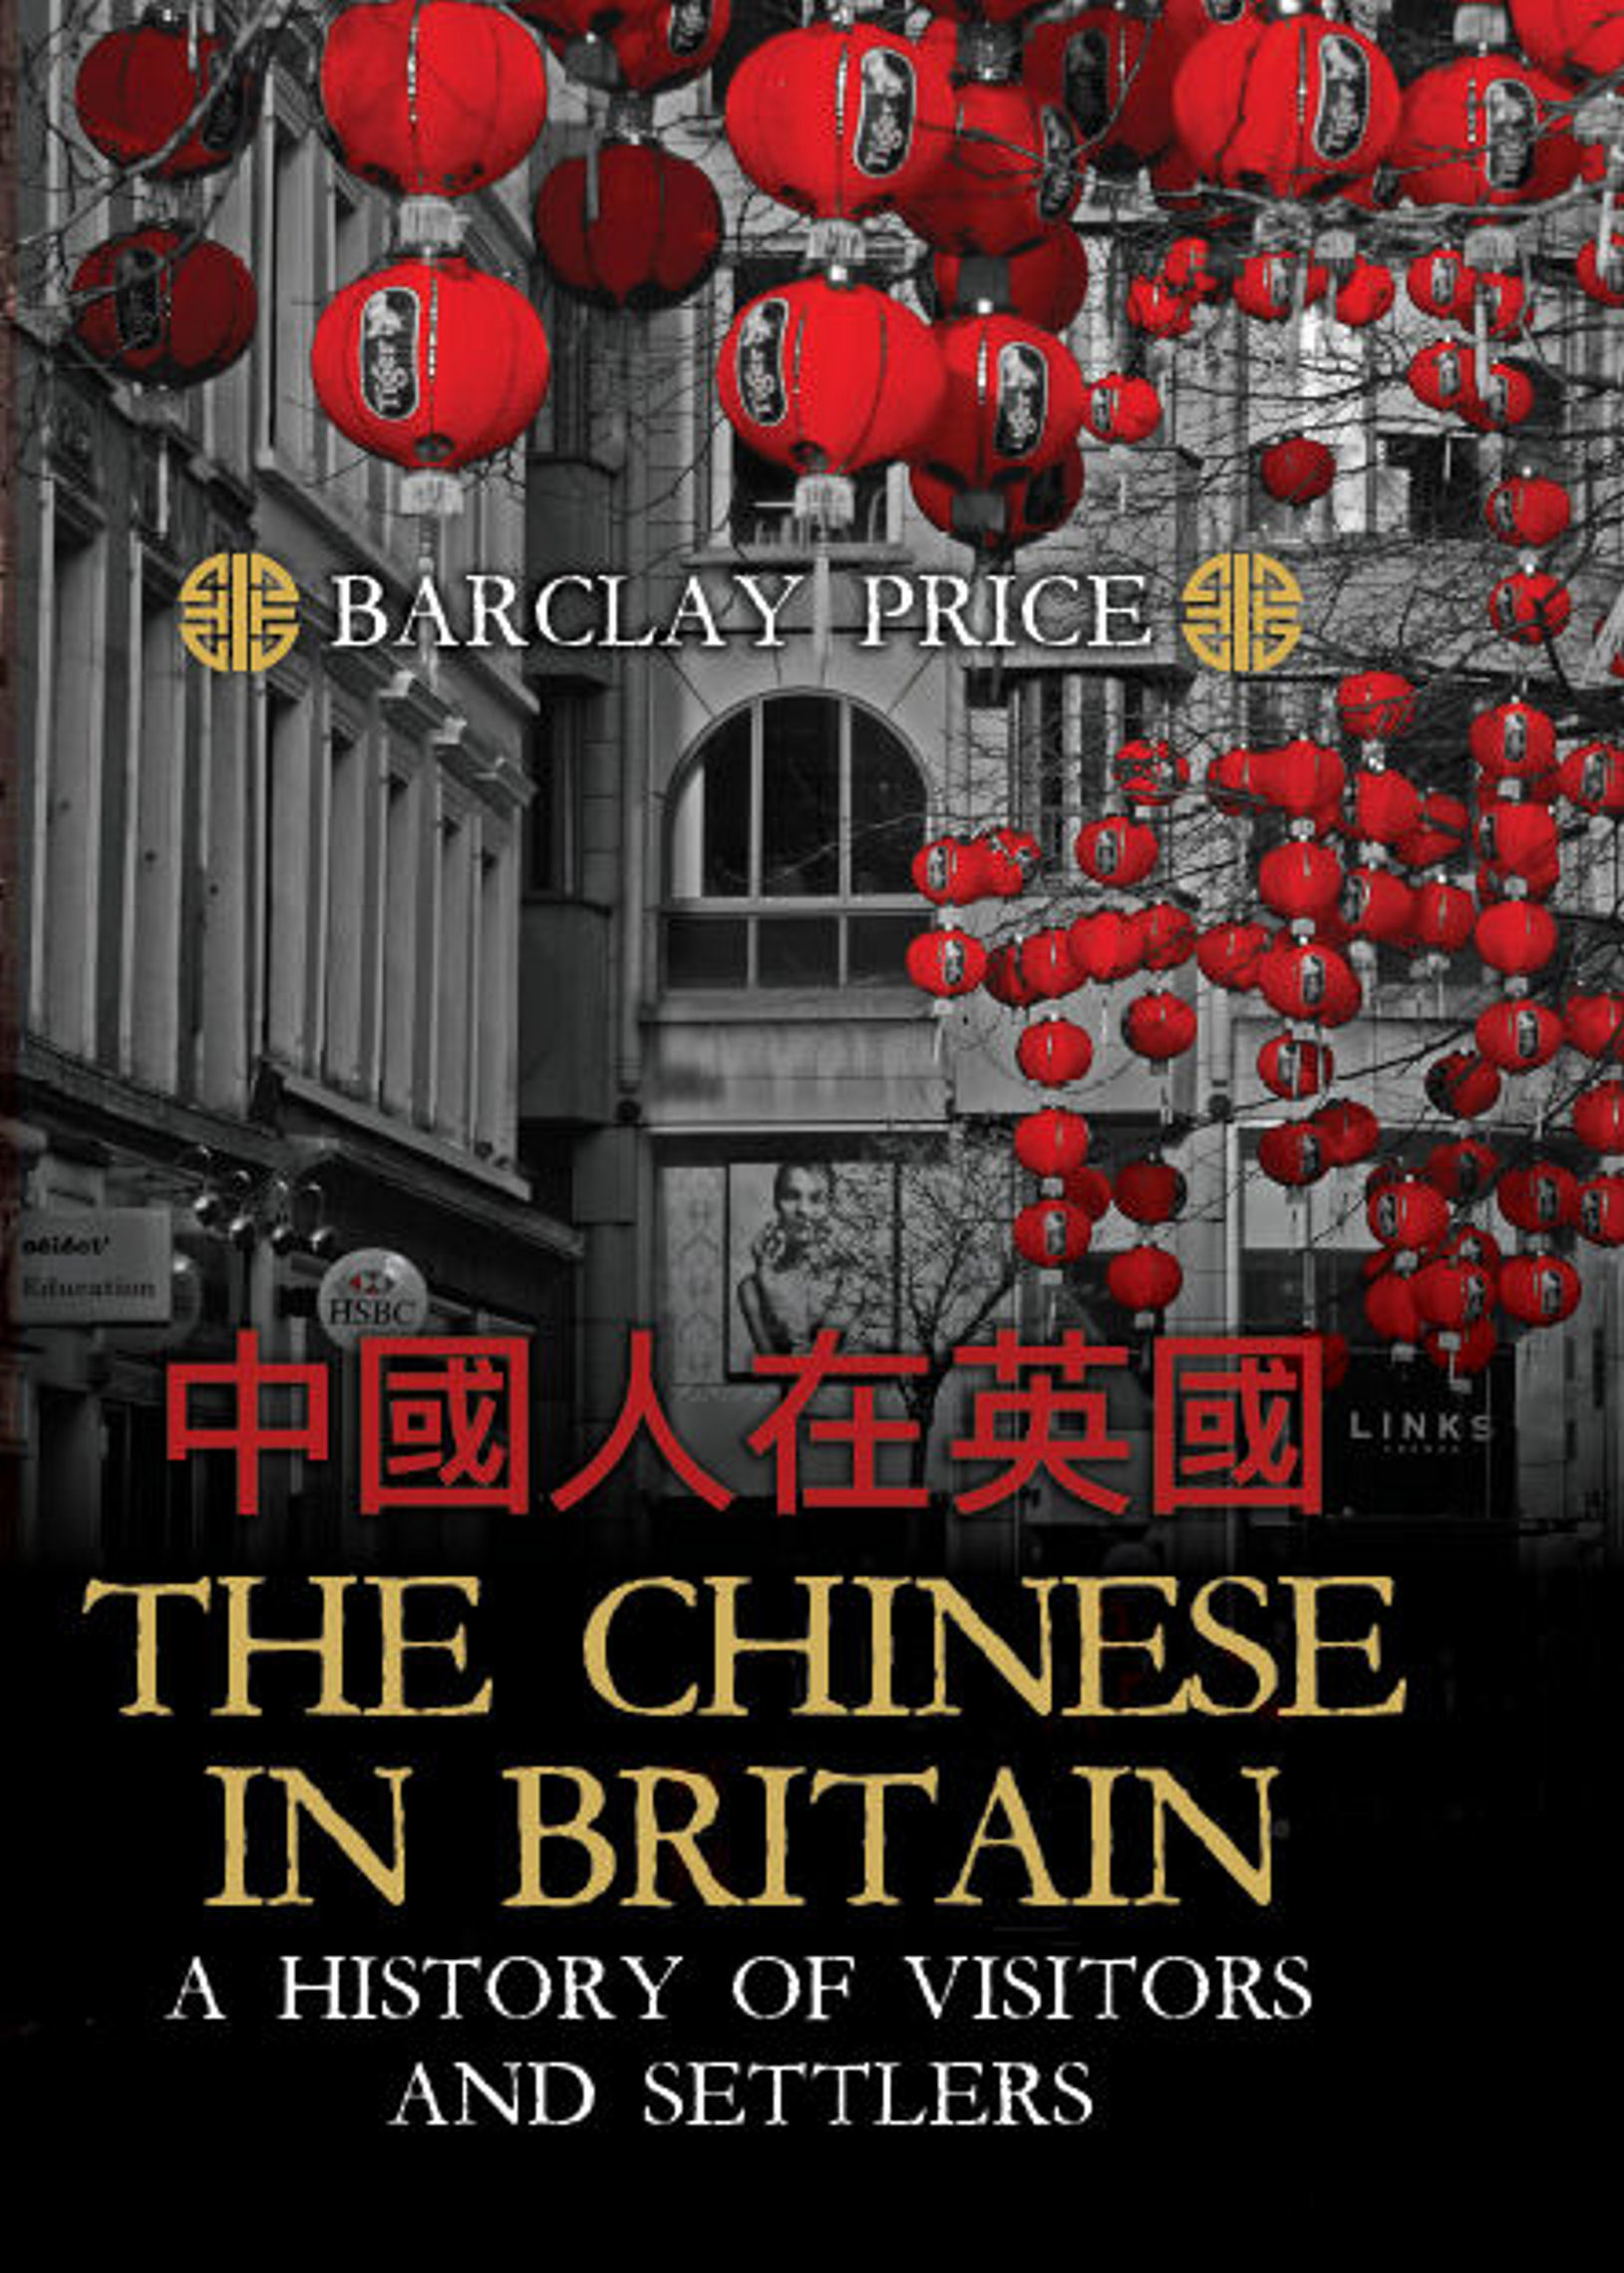 The Chinese in Britain book cover